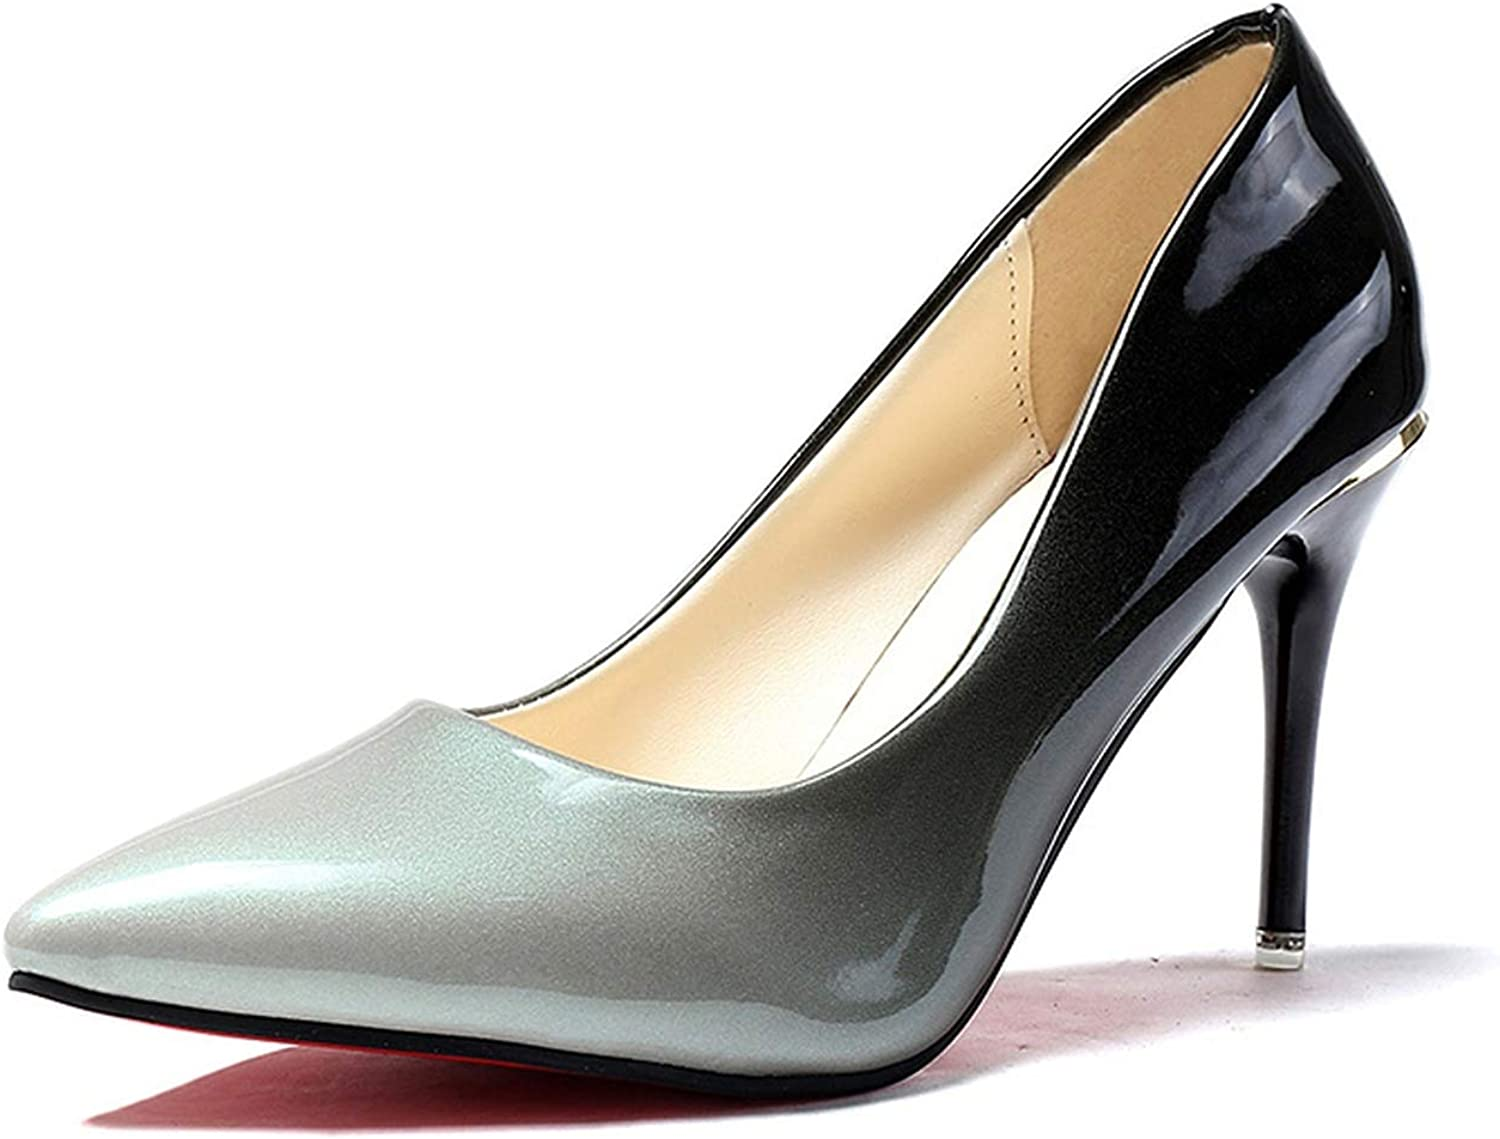 Wild Little Cat Patent Leather High Heels color Pumps Black Red Dress shoes Office Women shoes 60h48